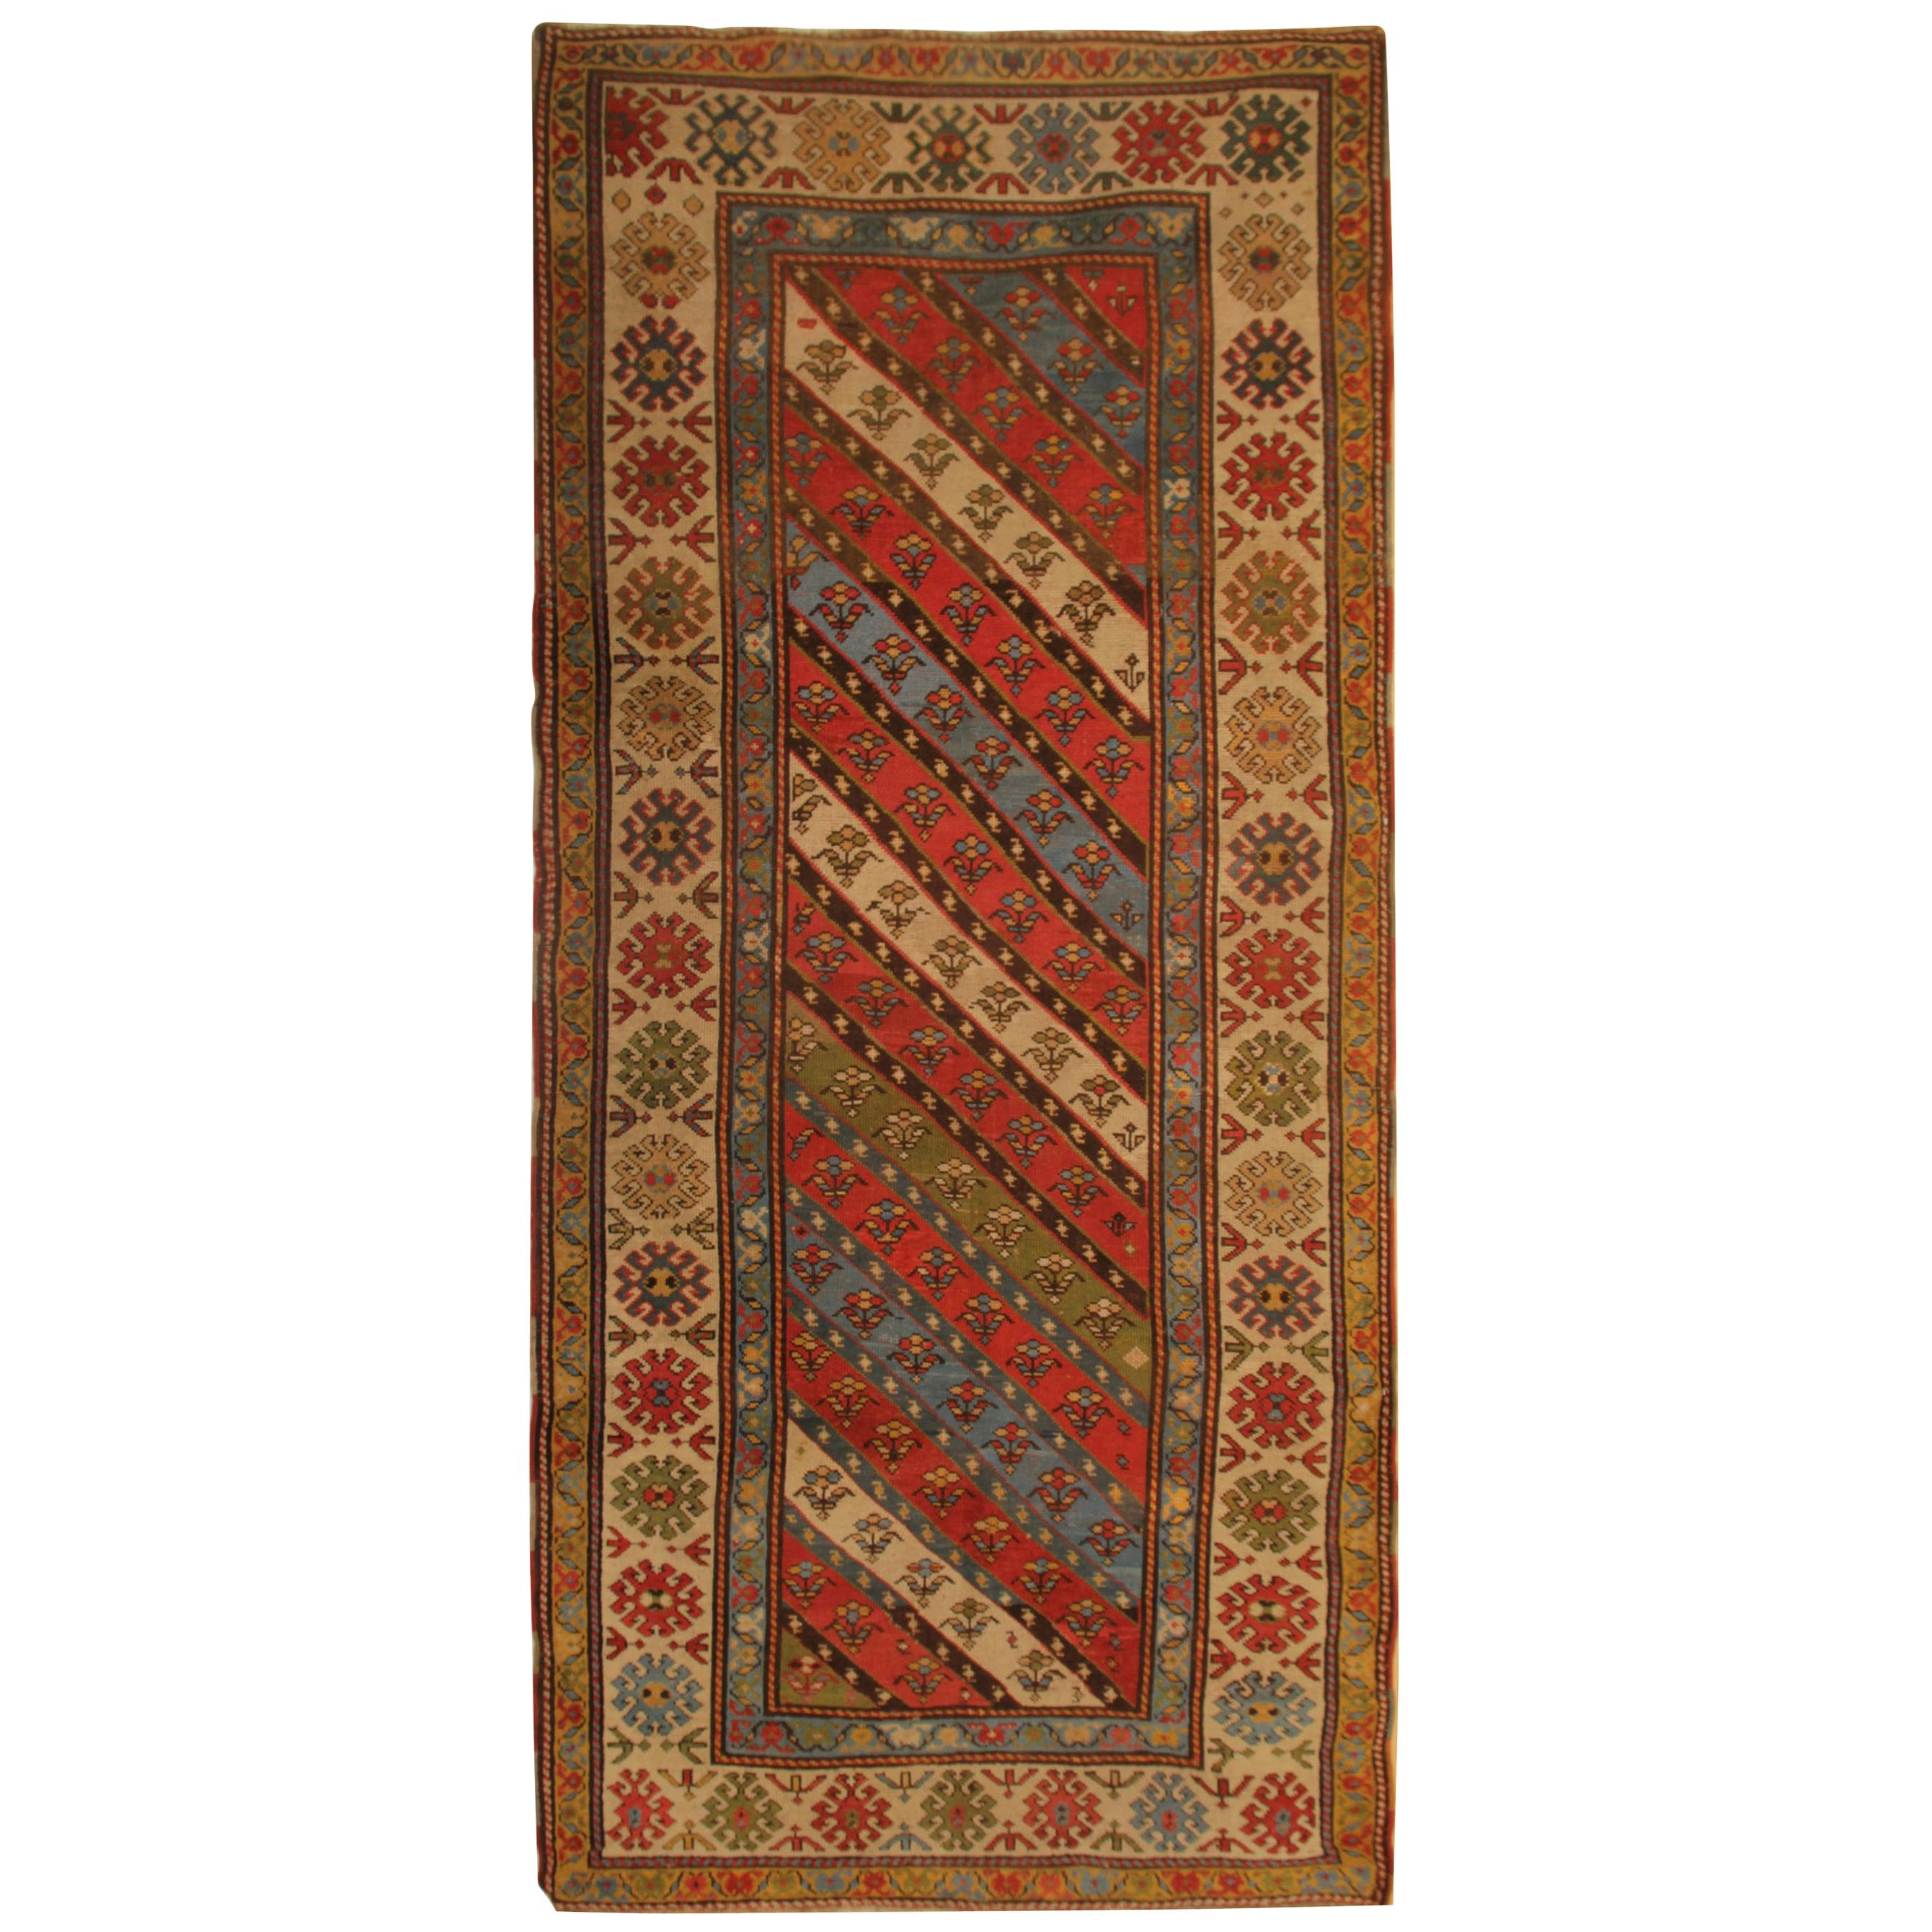 Rare Antique Rug Caucasian Oriental Rug Handmade Carpet Shirvan Area Runner